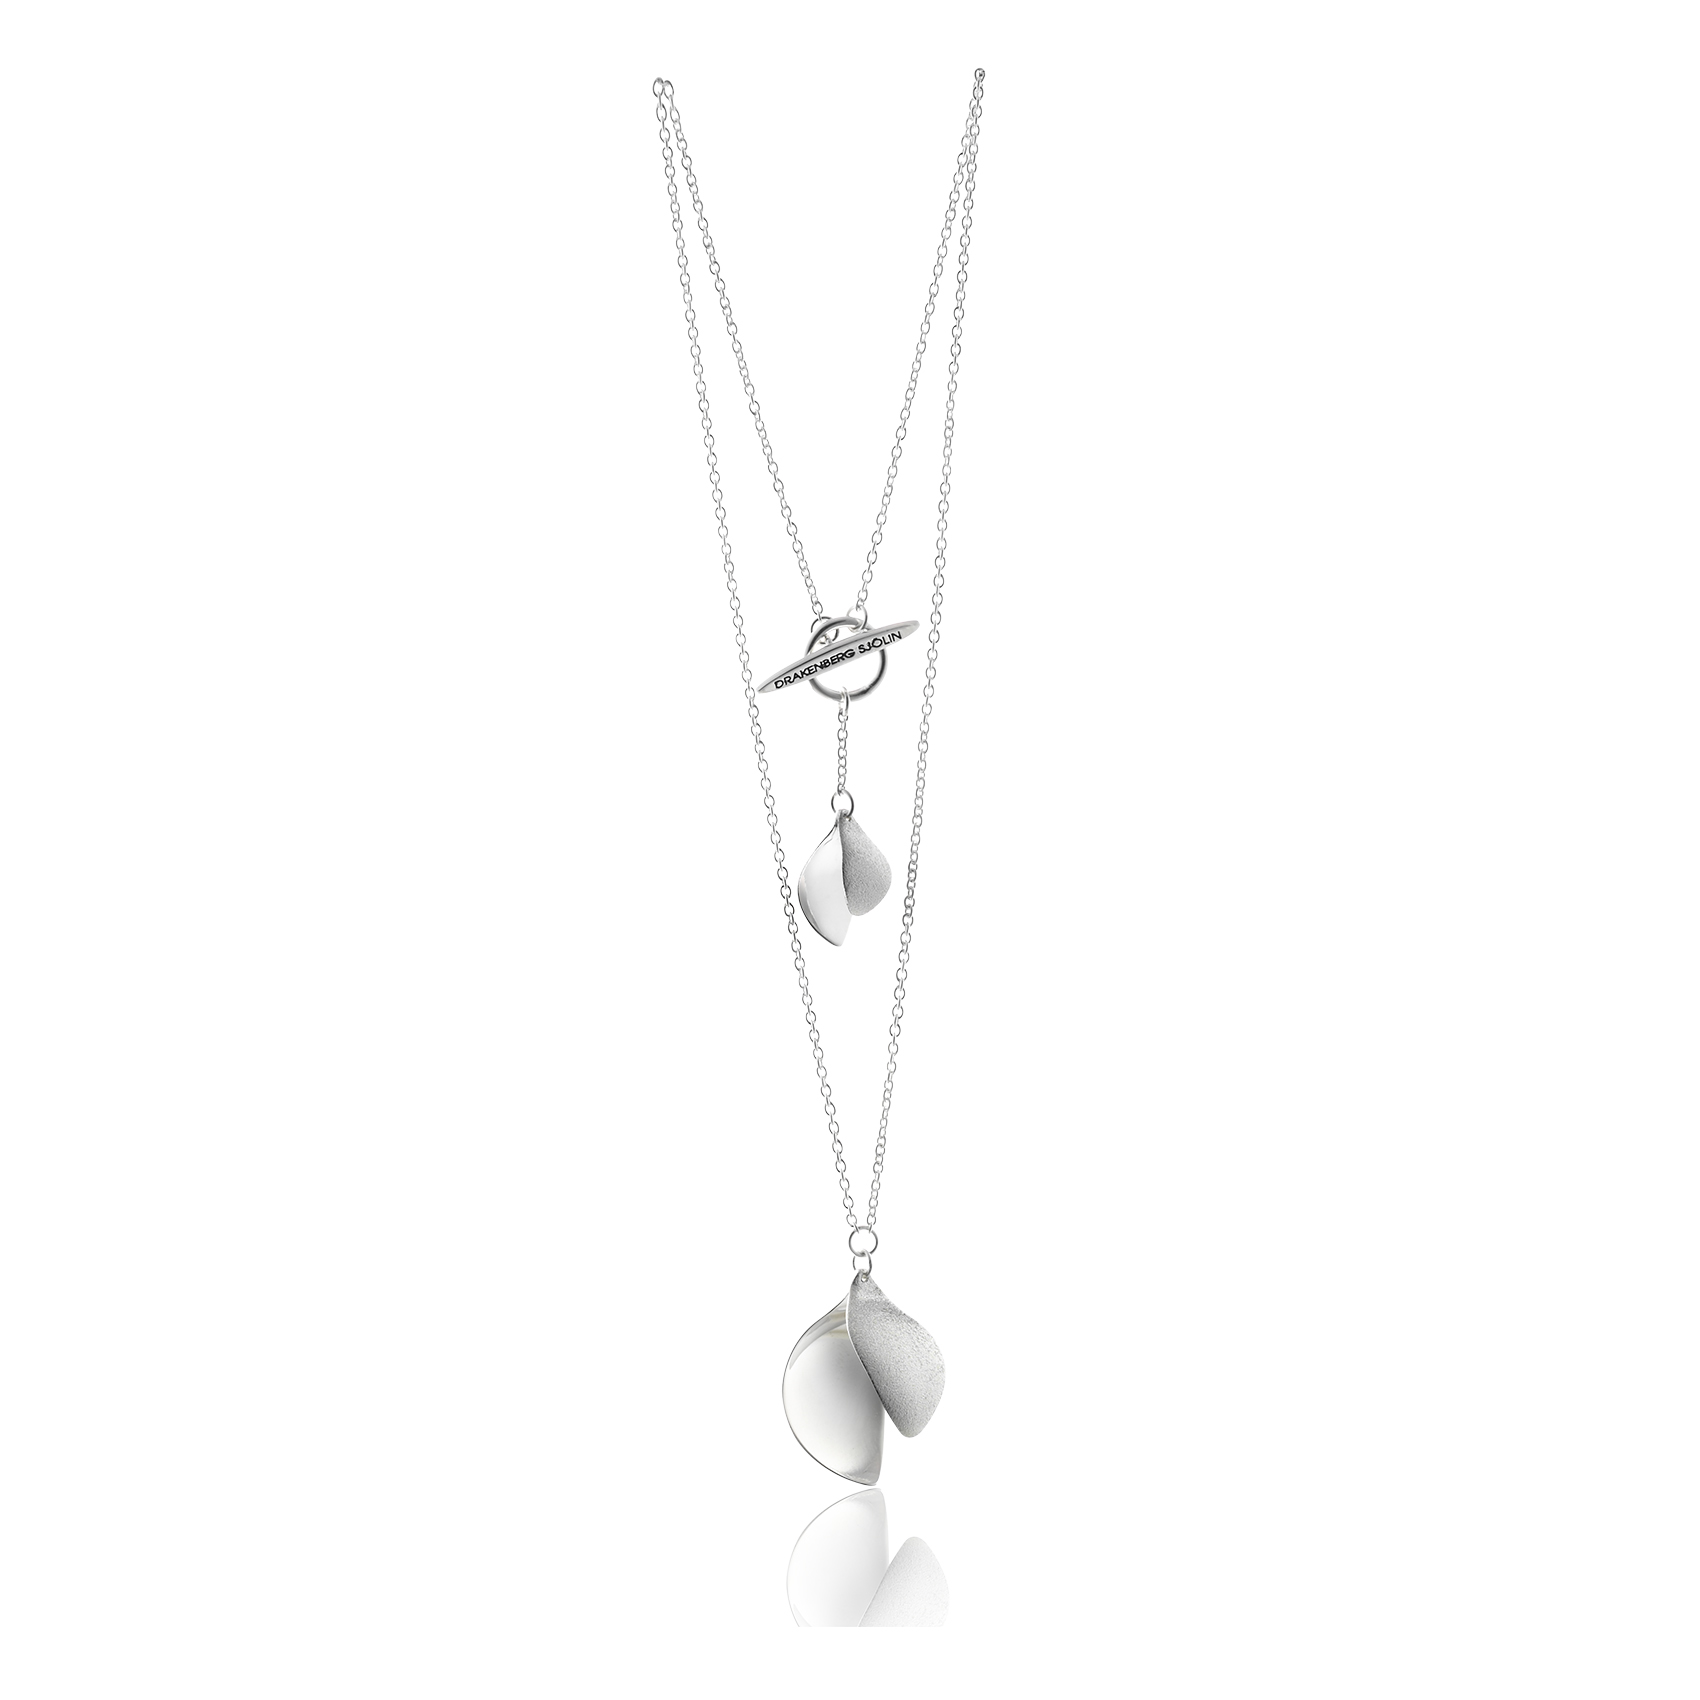 Blossom ShortNecklace-webb-chain